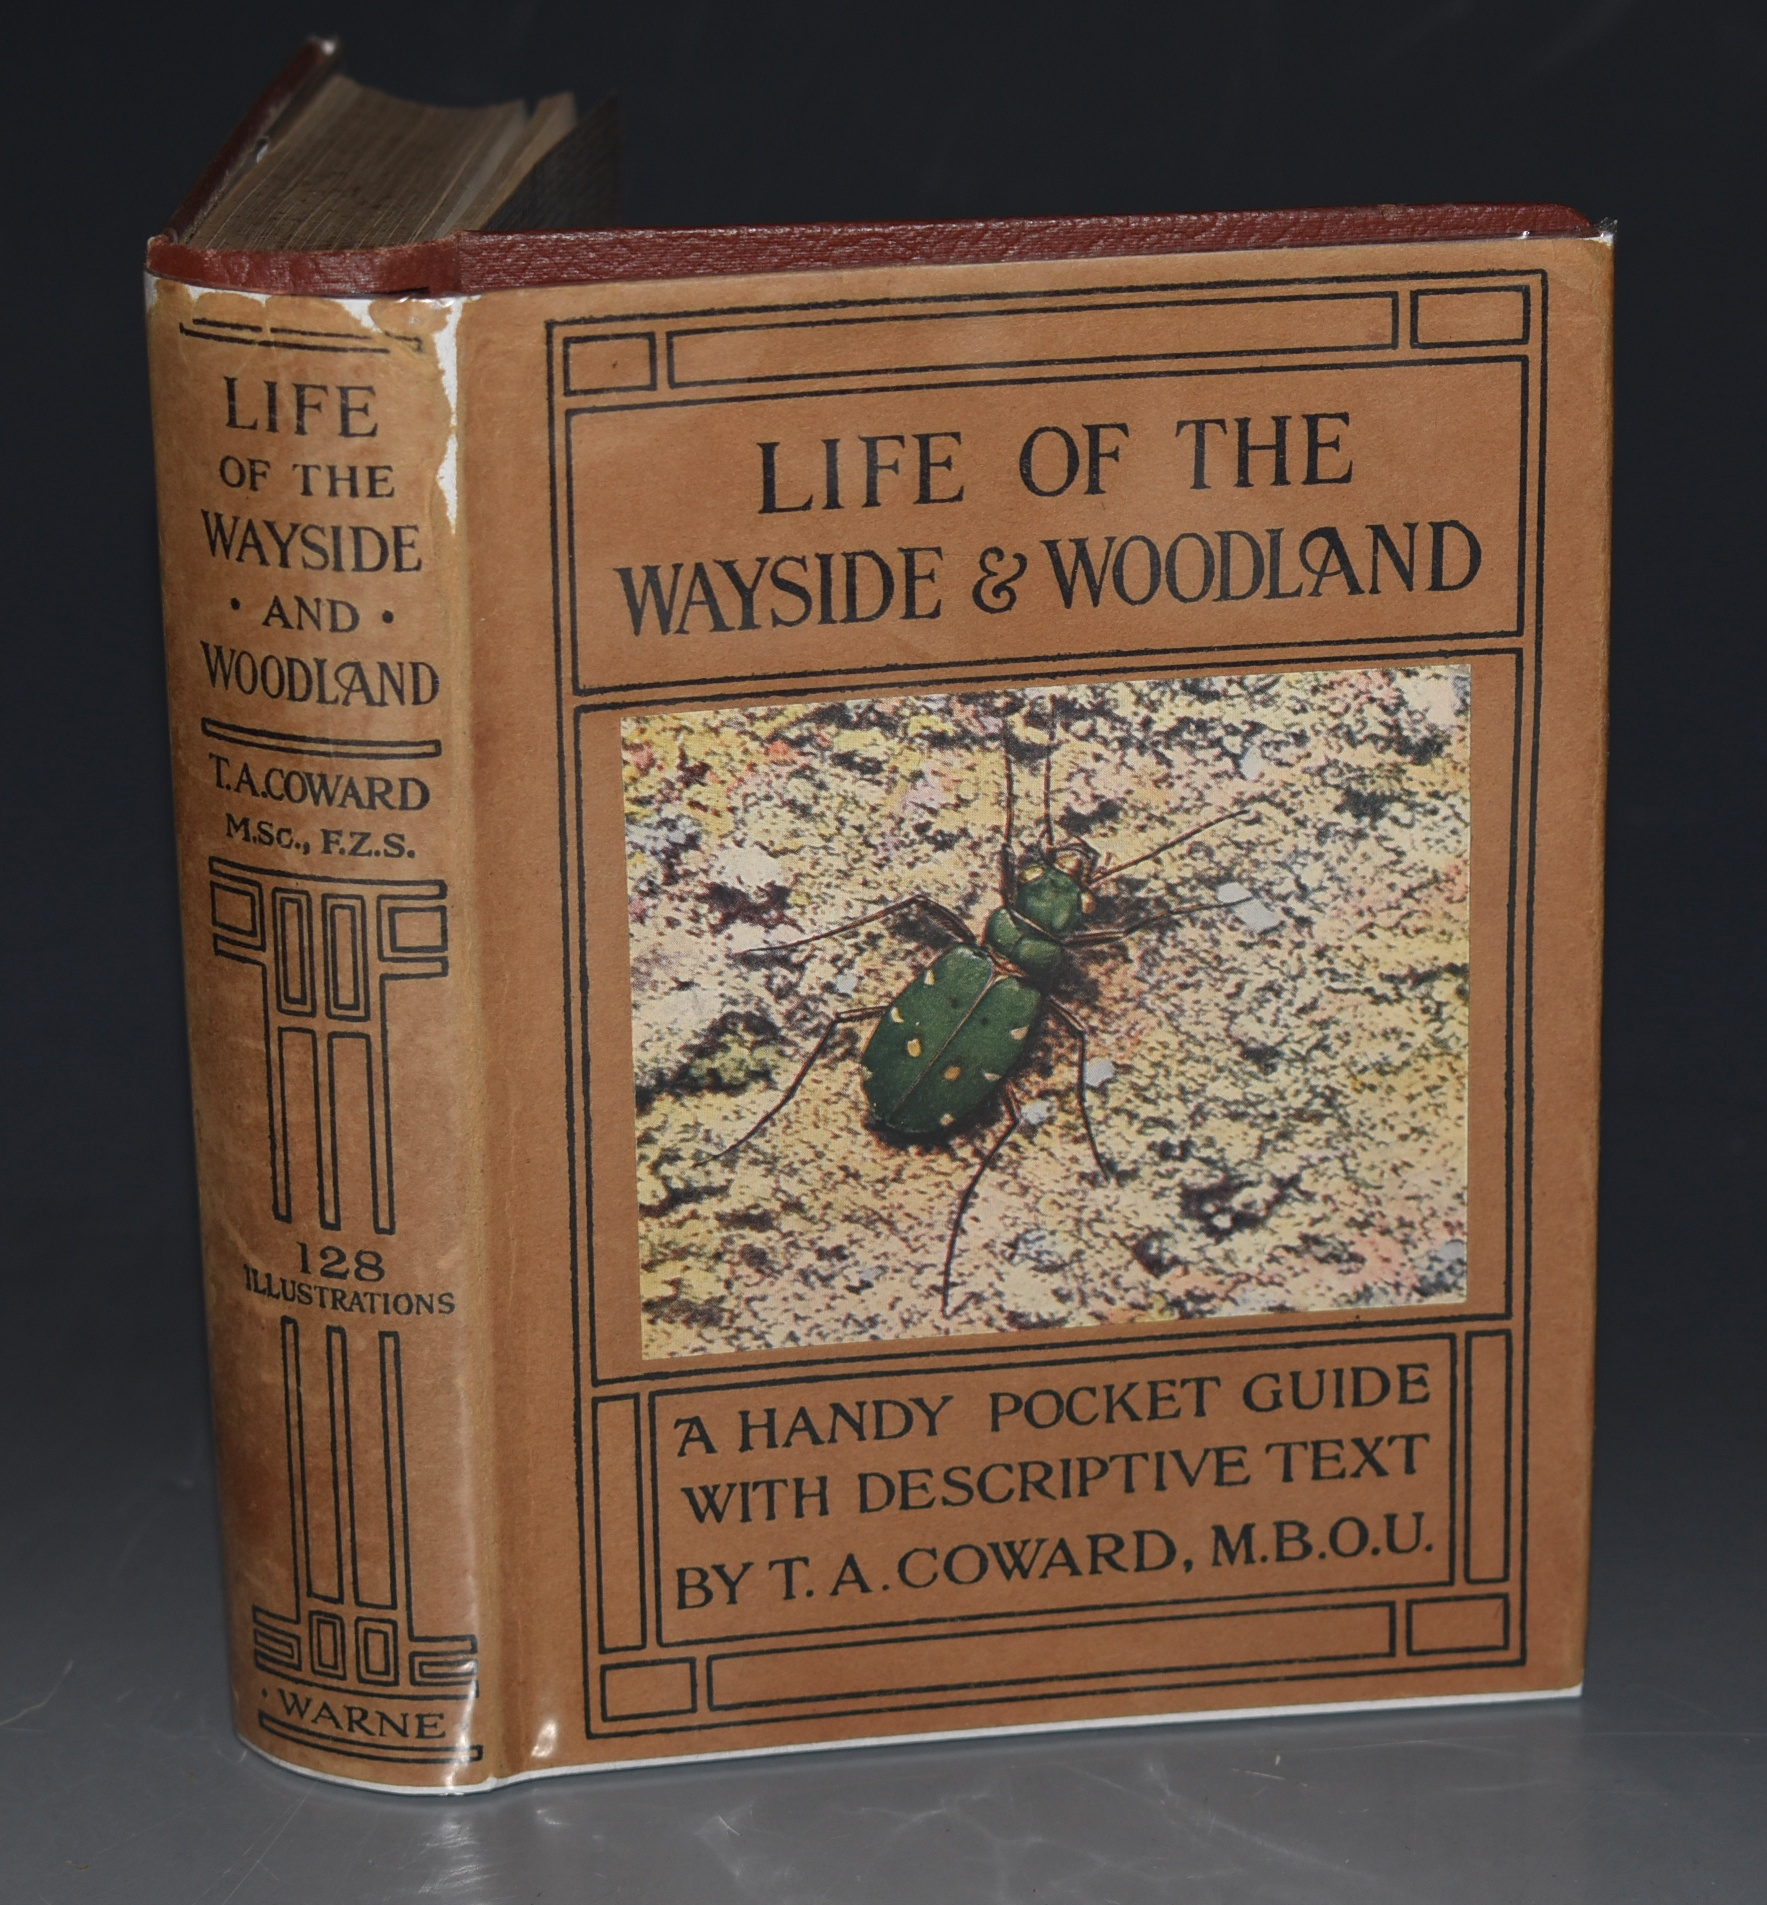 Image for Life of the Wayside & Woodland. When, Where, and What to Observe and Collect. With 128 Illustrations from Photographs 40 of which prepared in Colour by W. J. Stokoe, and 11 by Thomas Baddeley.